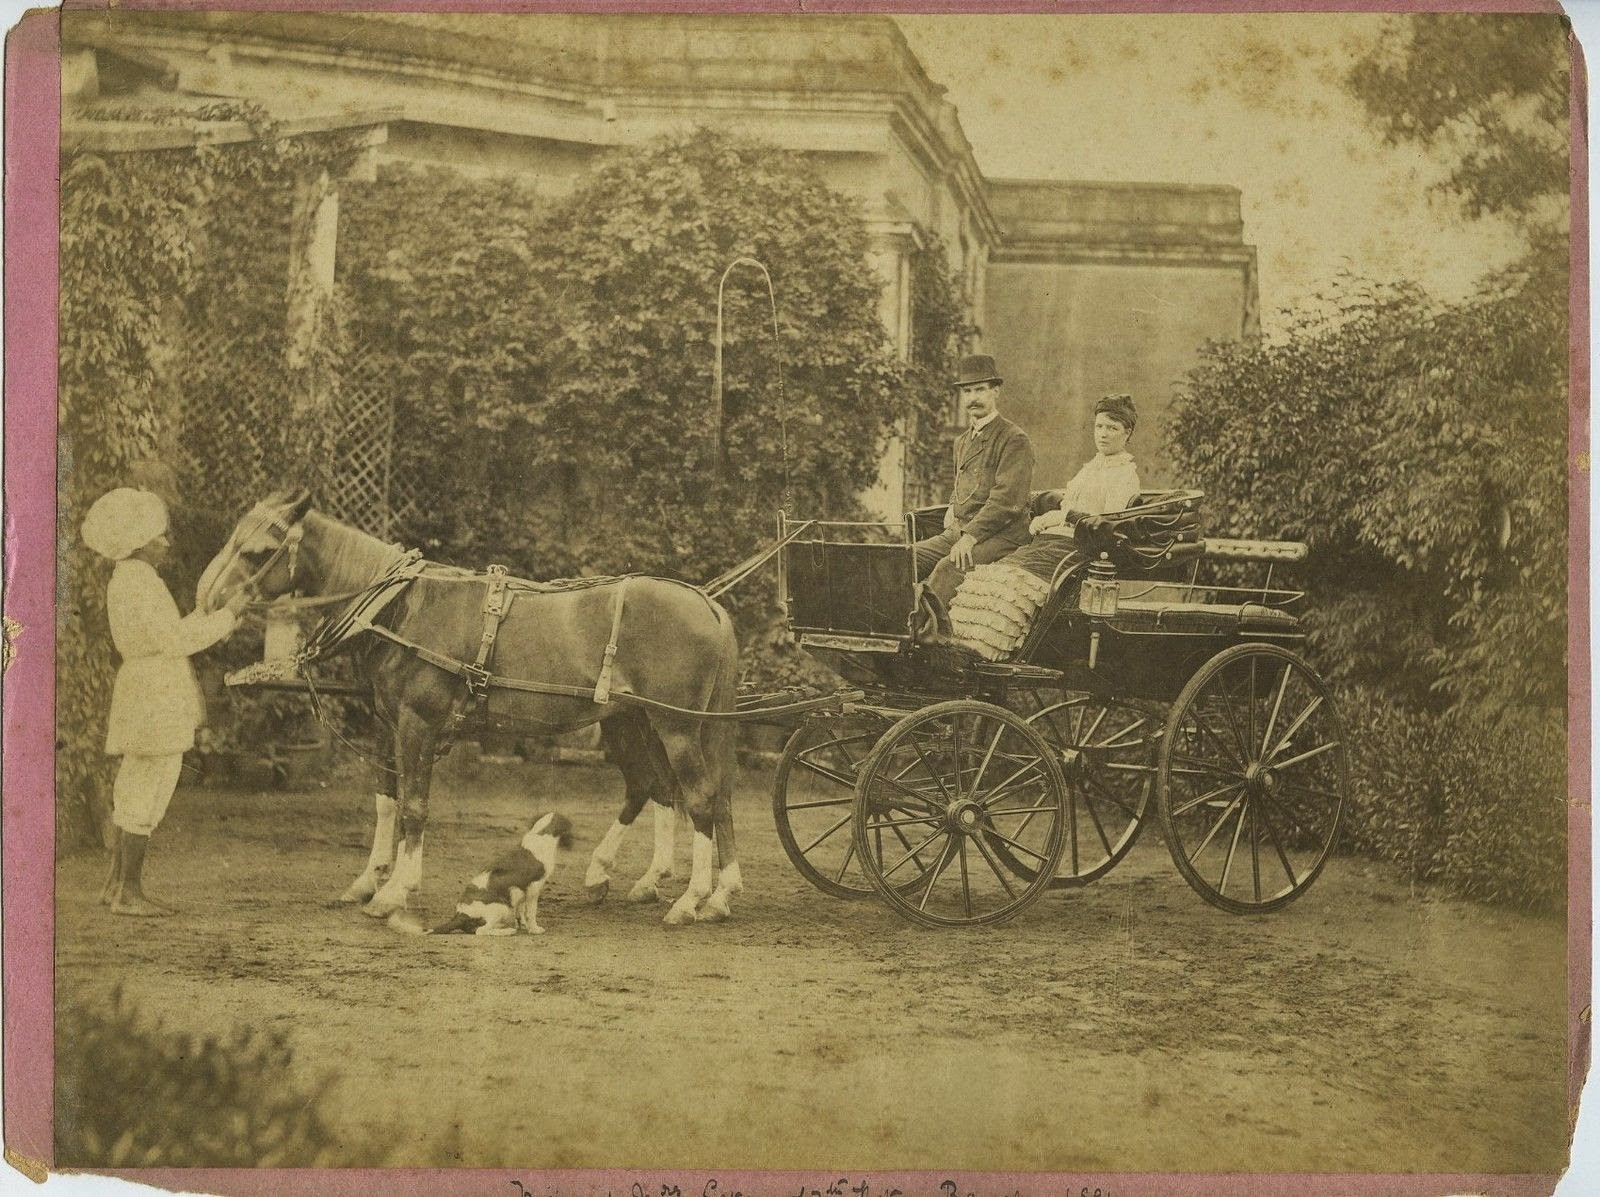 European Couple on a Horse Carriage - Bangalore, Karnataka, c1881